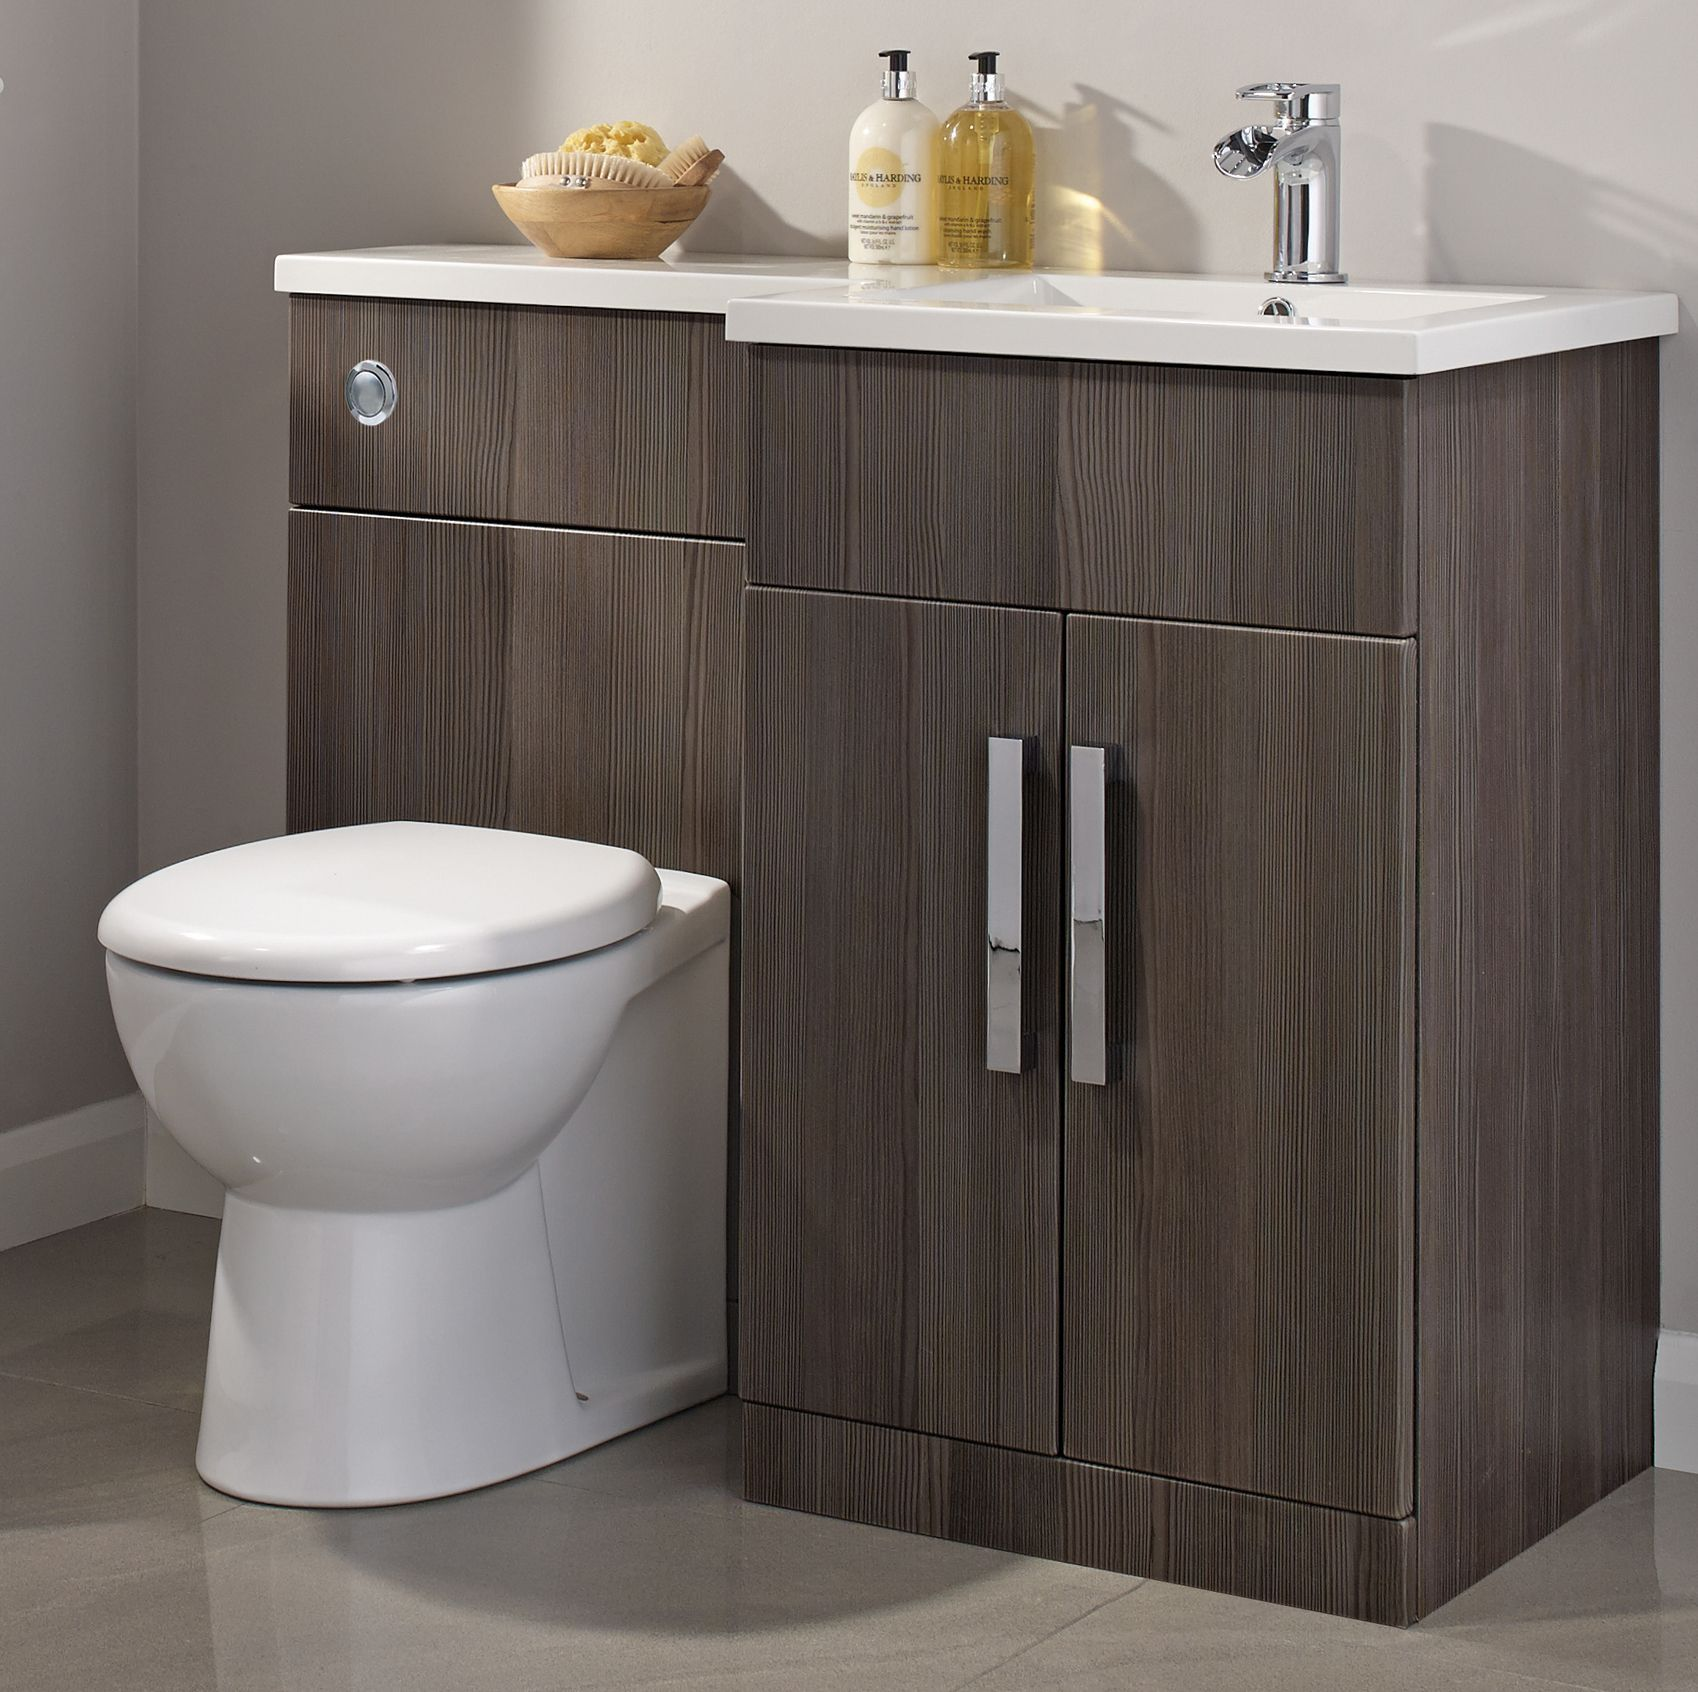 Cooke Lewis Ardesio Bodega Grey Rh Vanity Toilet Pack Departments Diy At B Q